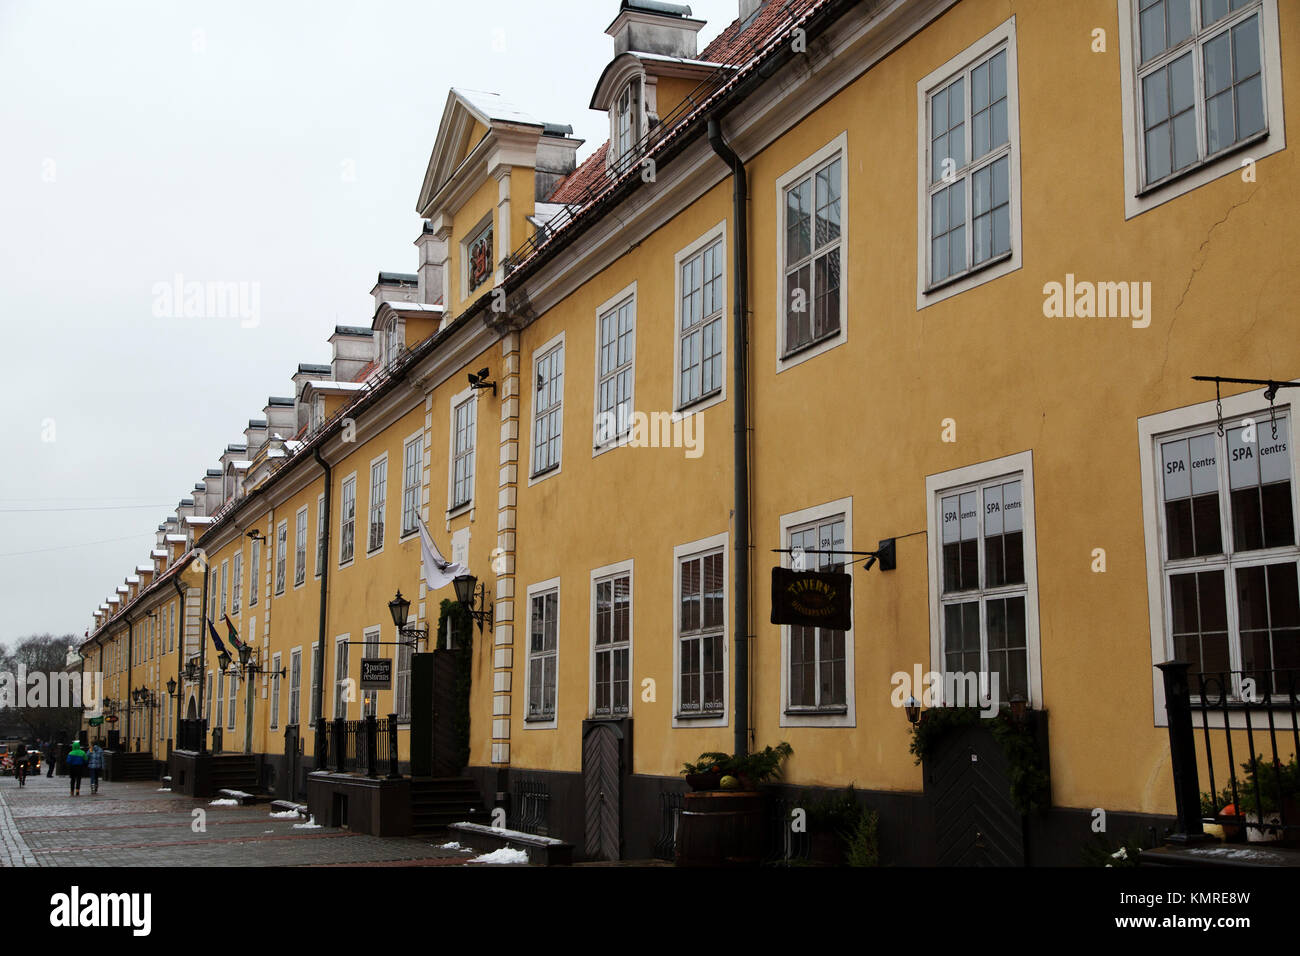 Yellow facades of buildings on Torna iela in Riga, Latvia. Businesses now occupy the buildings. - Stock Image